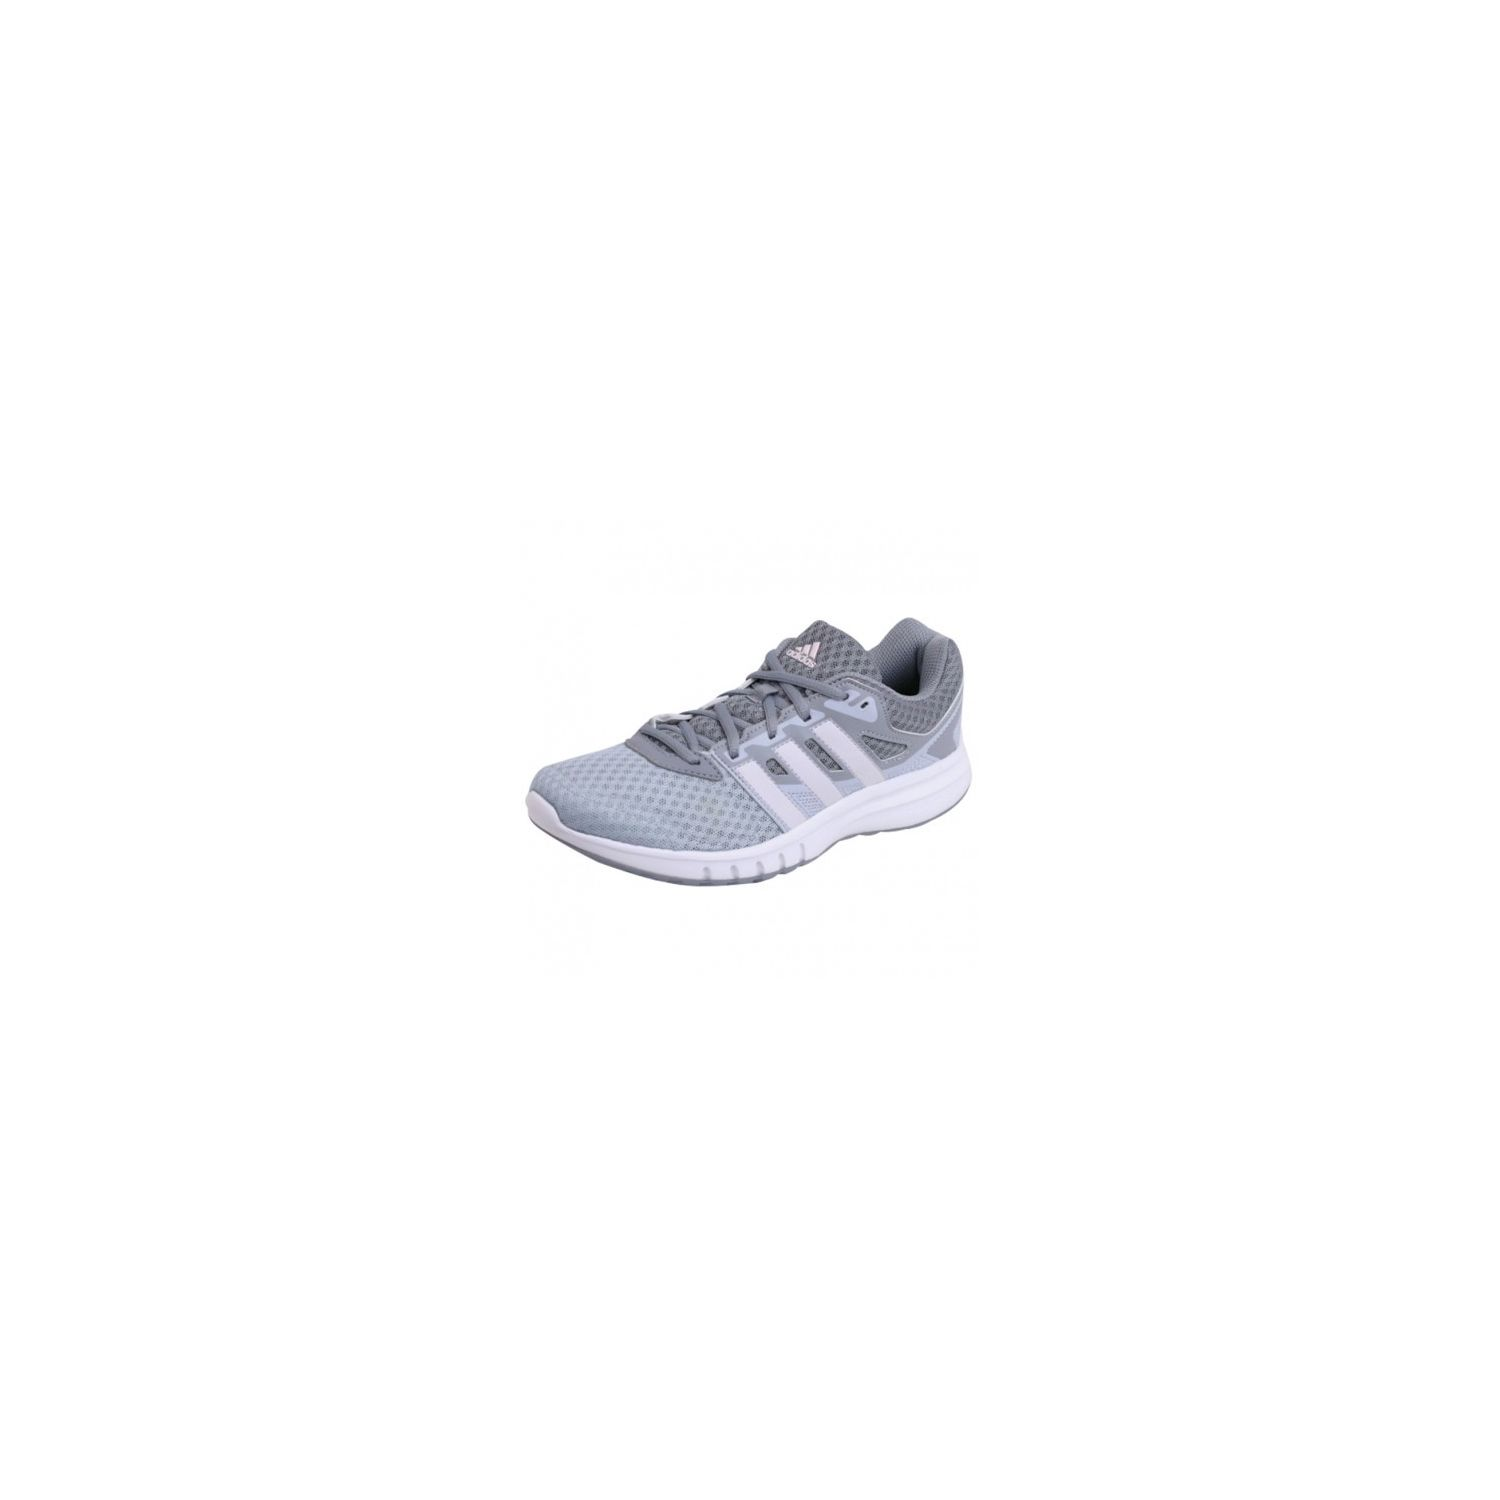 separation shoes 4f06d 8e4f2 Gris Femme Adidas Originals 2 Running Chaussures Galaxy gOgS0wAq.